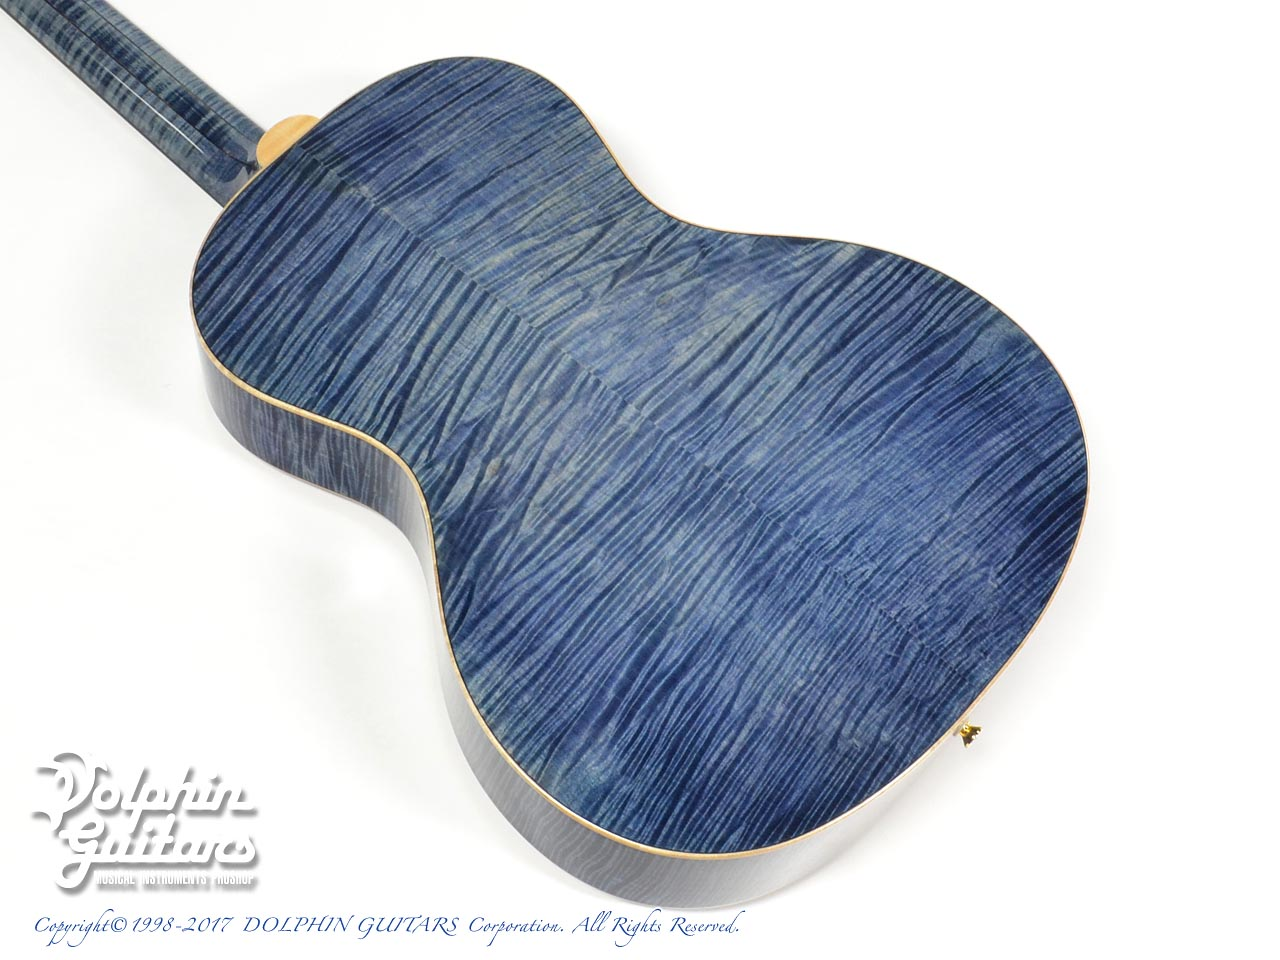 VG: VG-00 Ltd. FM (Flame Maple) (Sakan Gradation Blue) (3)